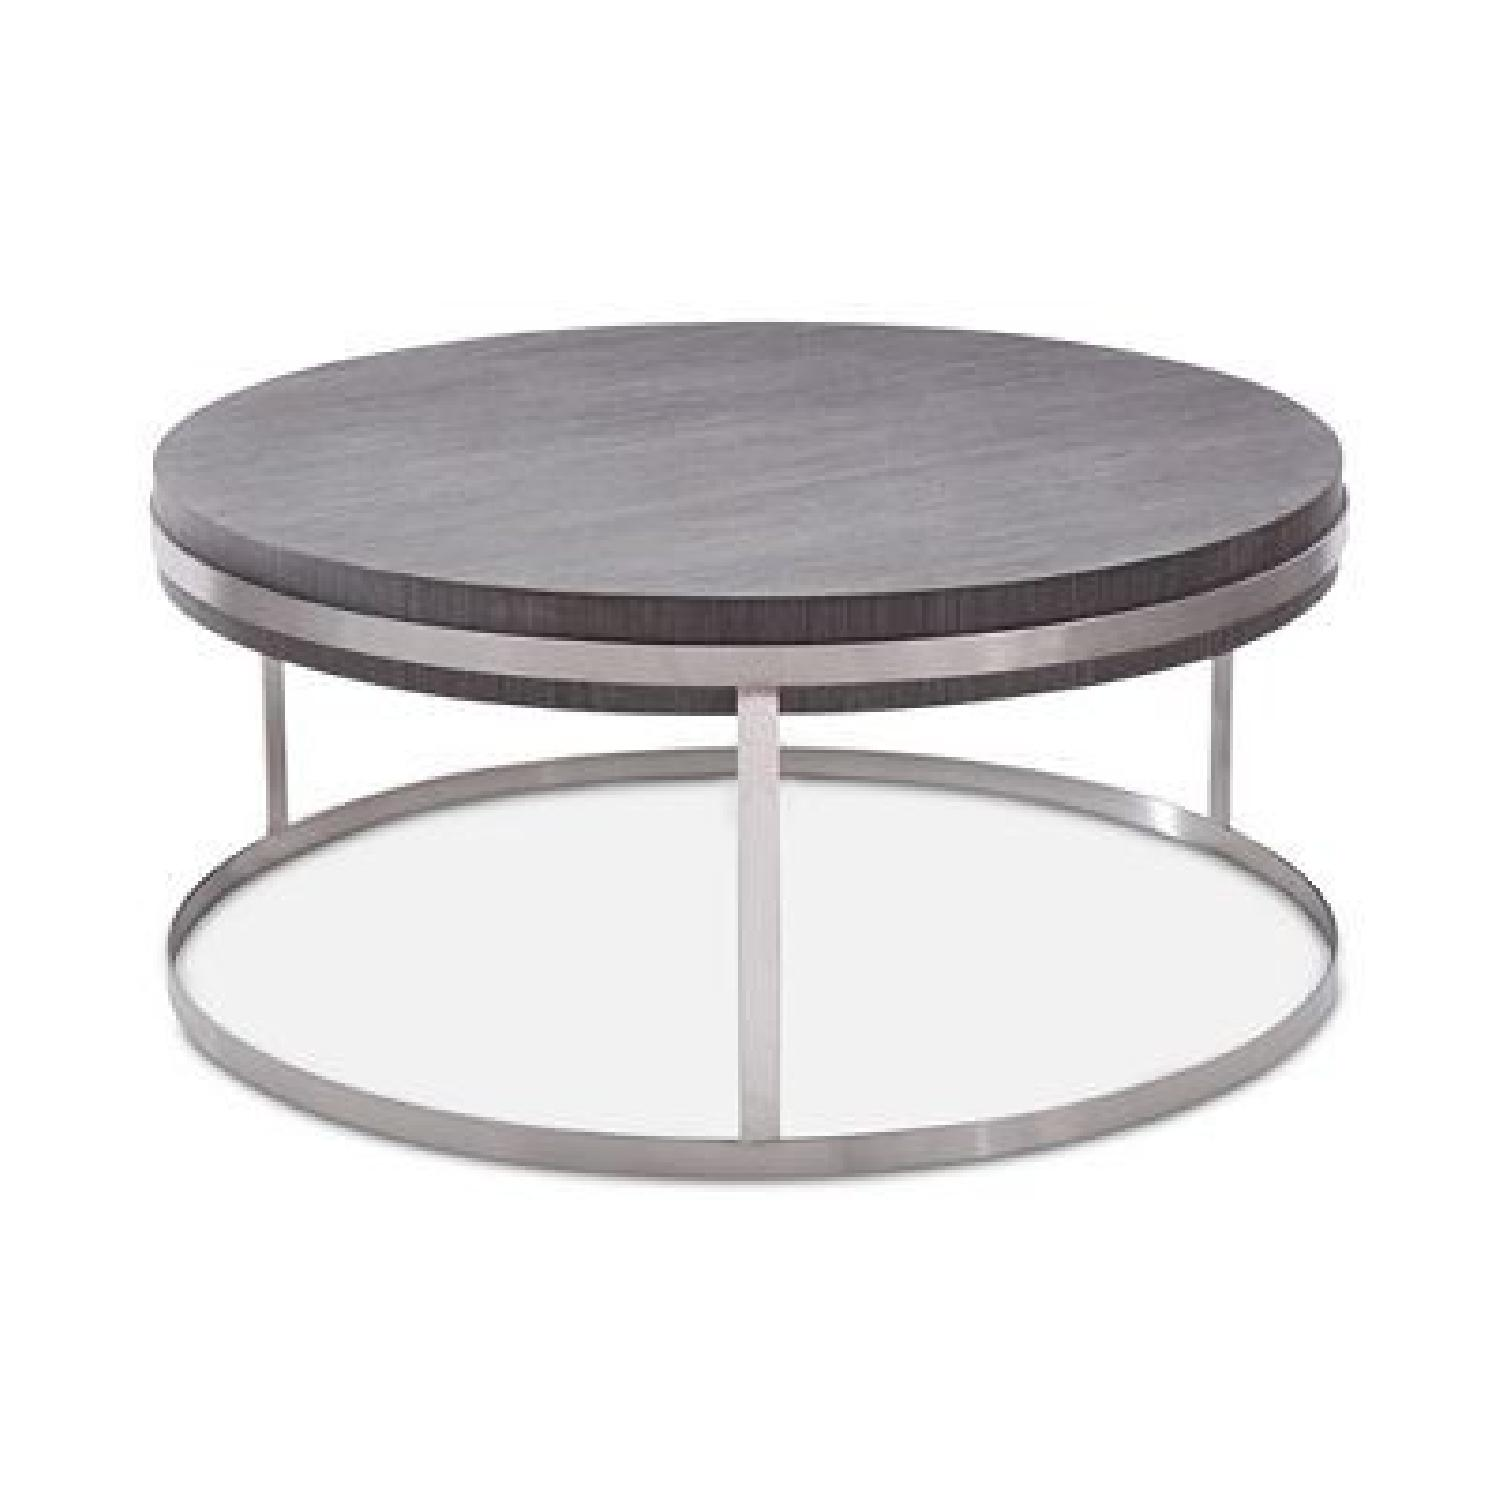 Armen living sunset gray wood steel coffee table aptdeco for Gray wood and metal coffee table